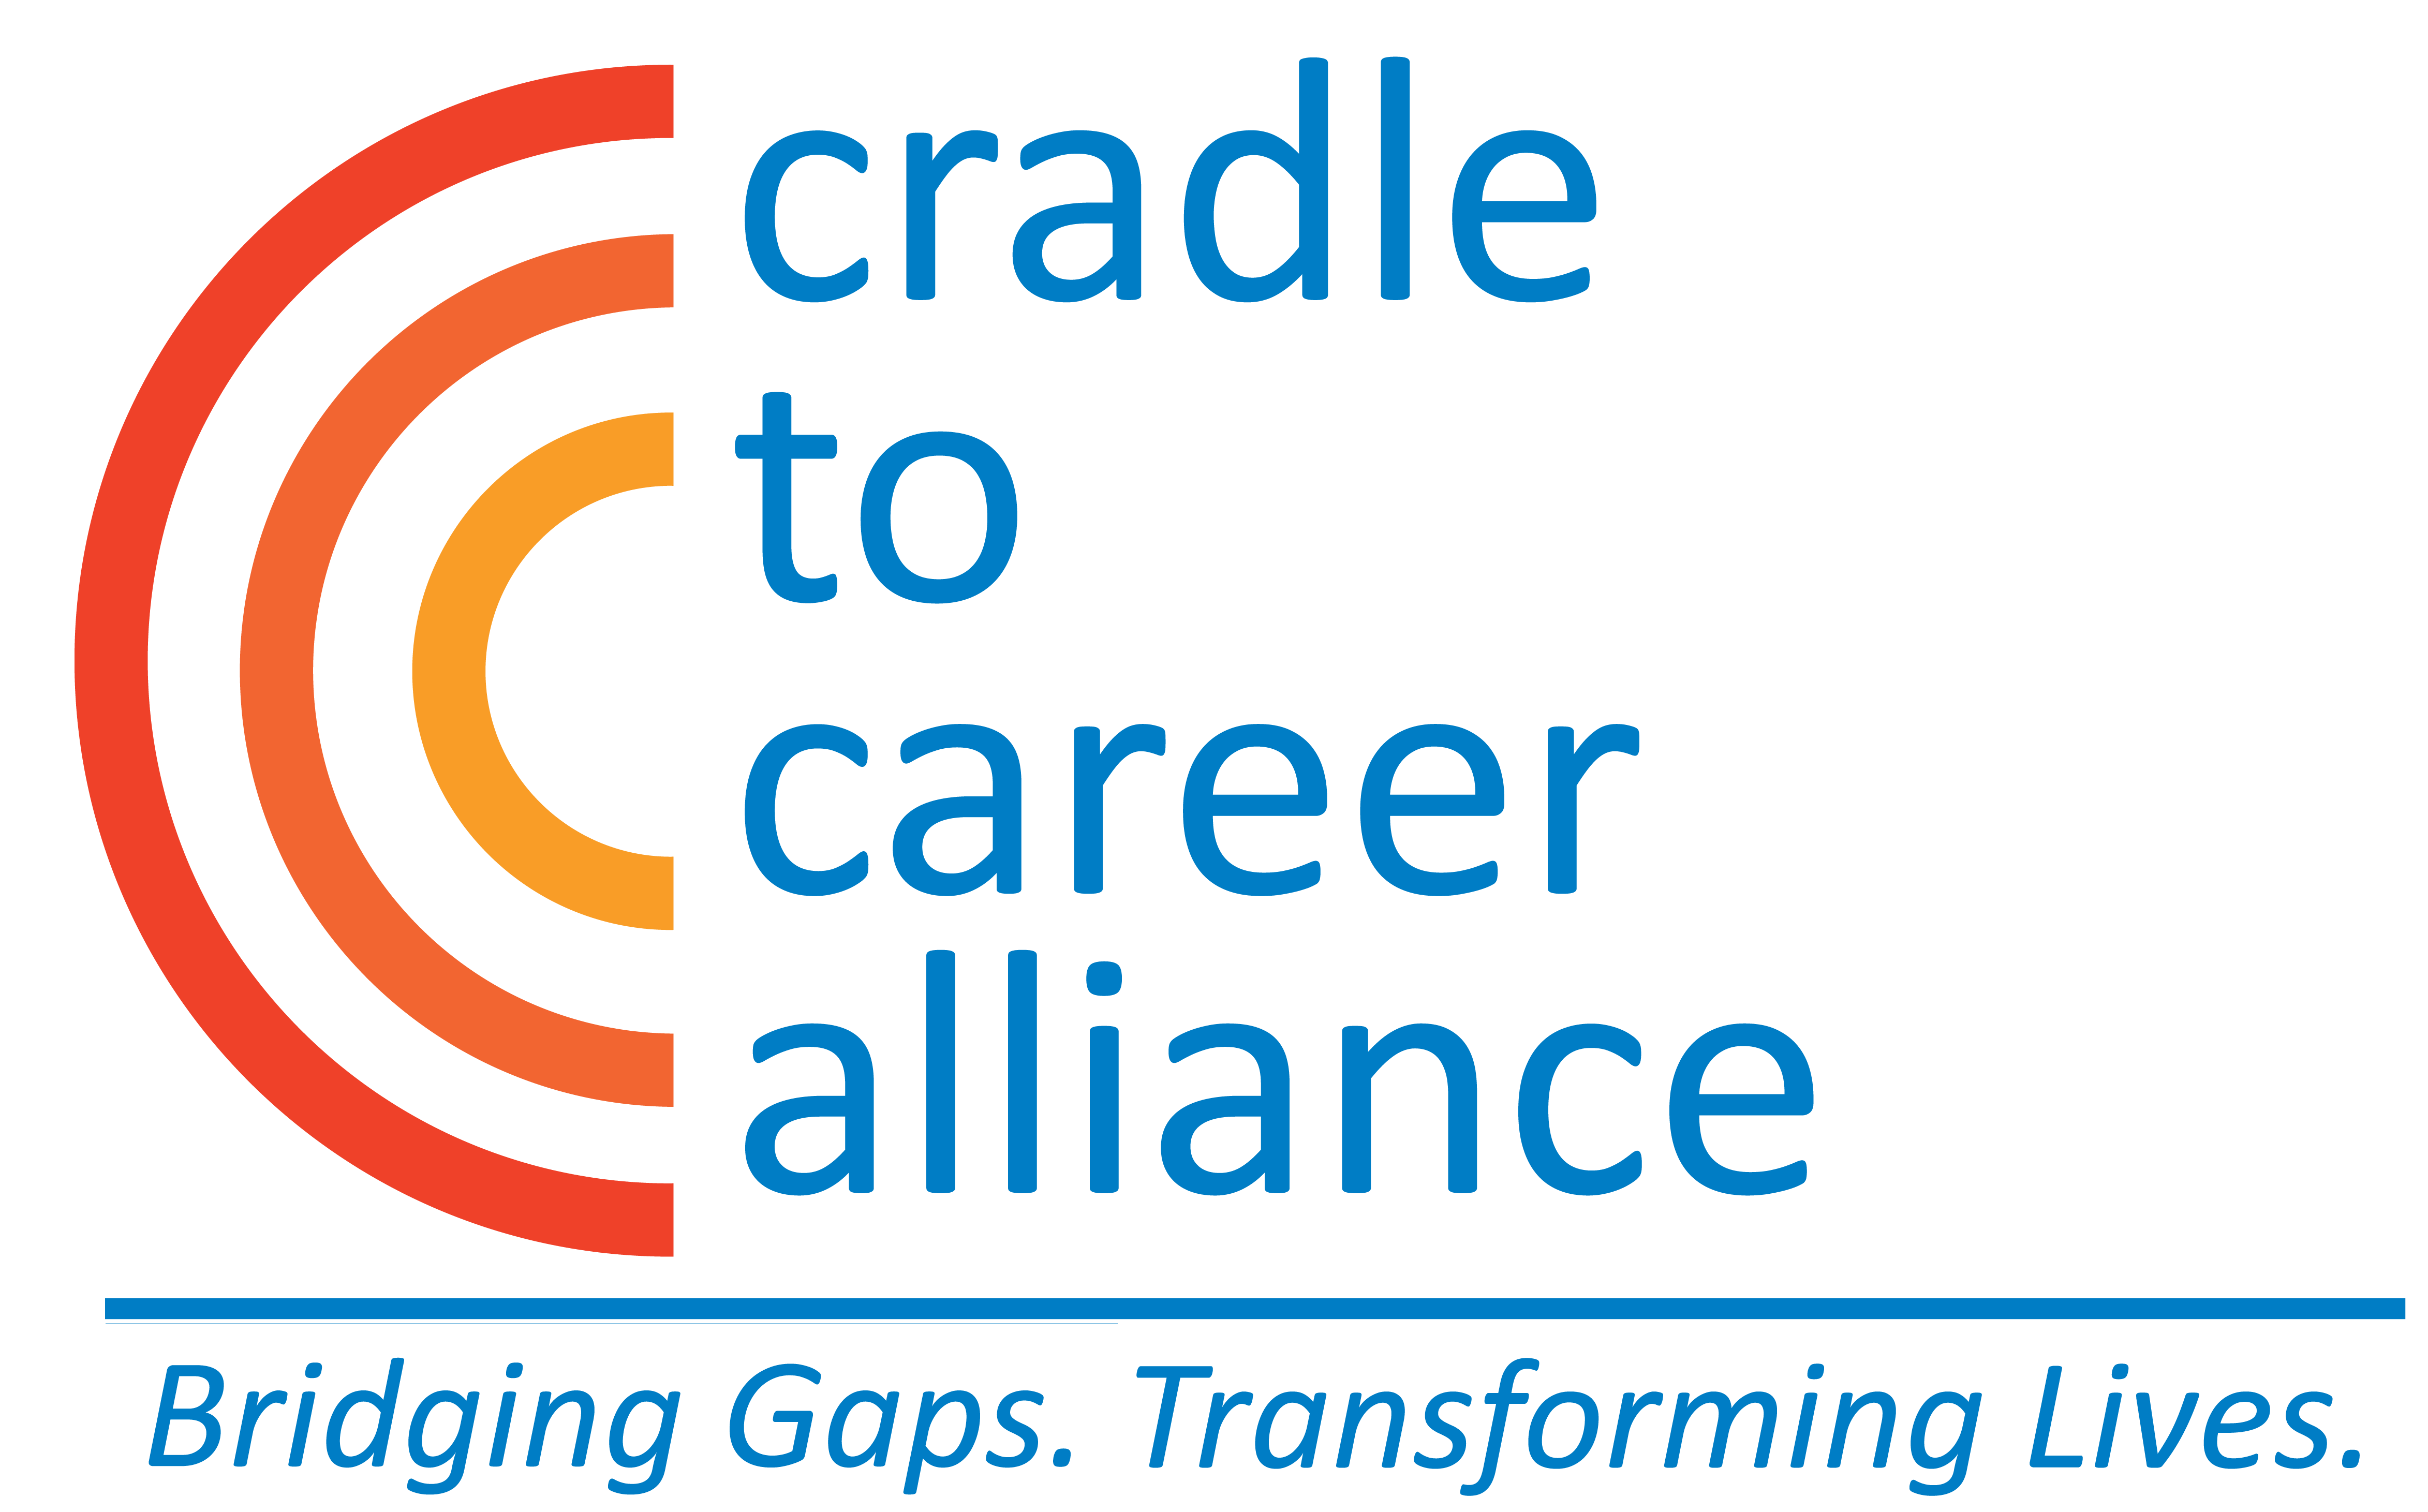 About The Symposium Cradle To Career Alliance